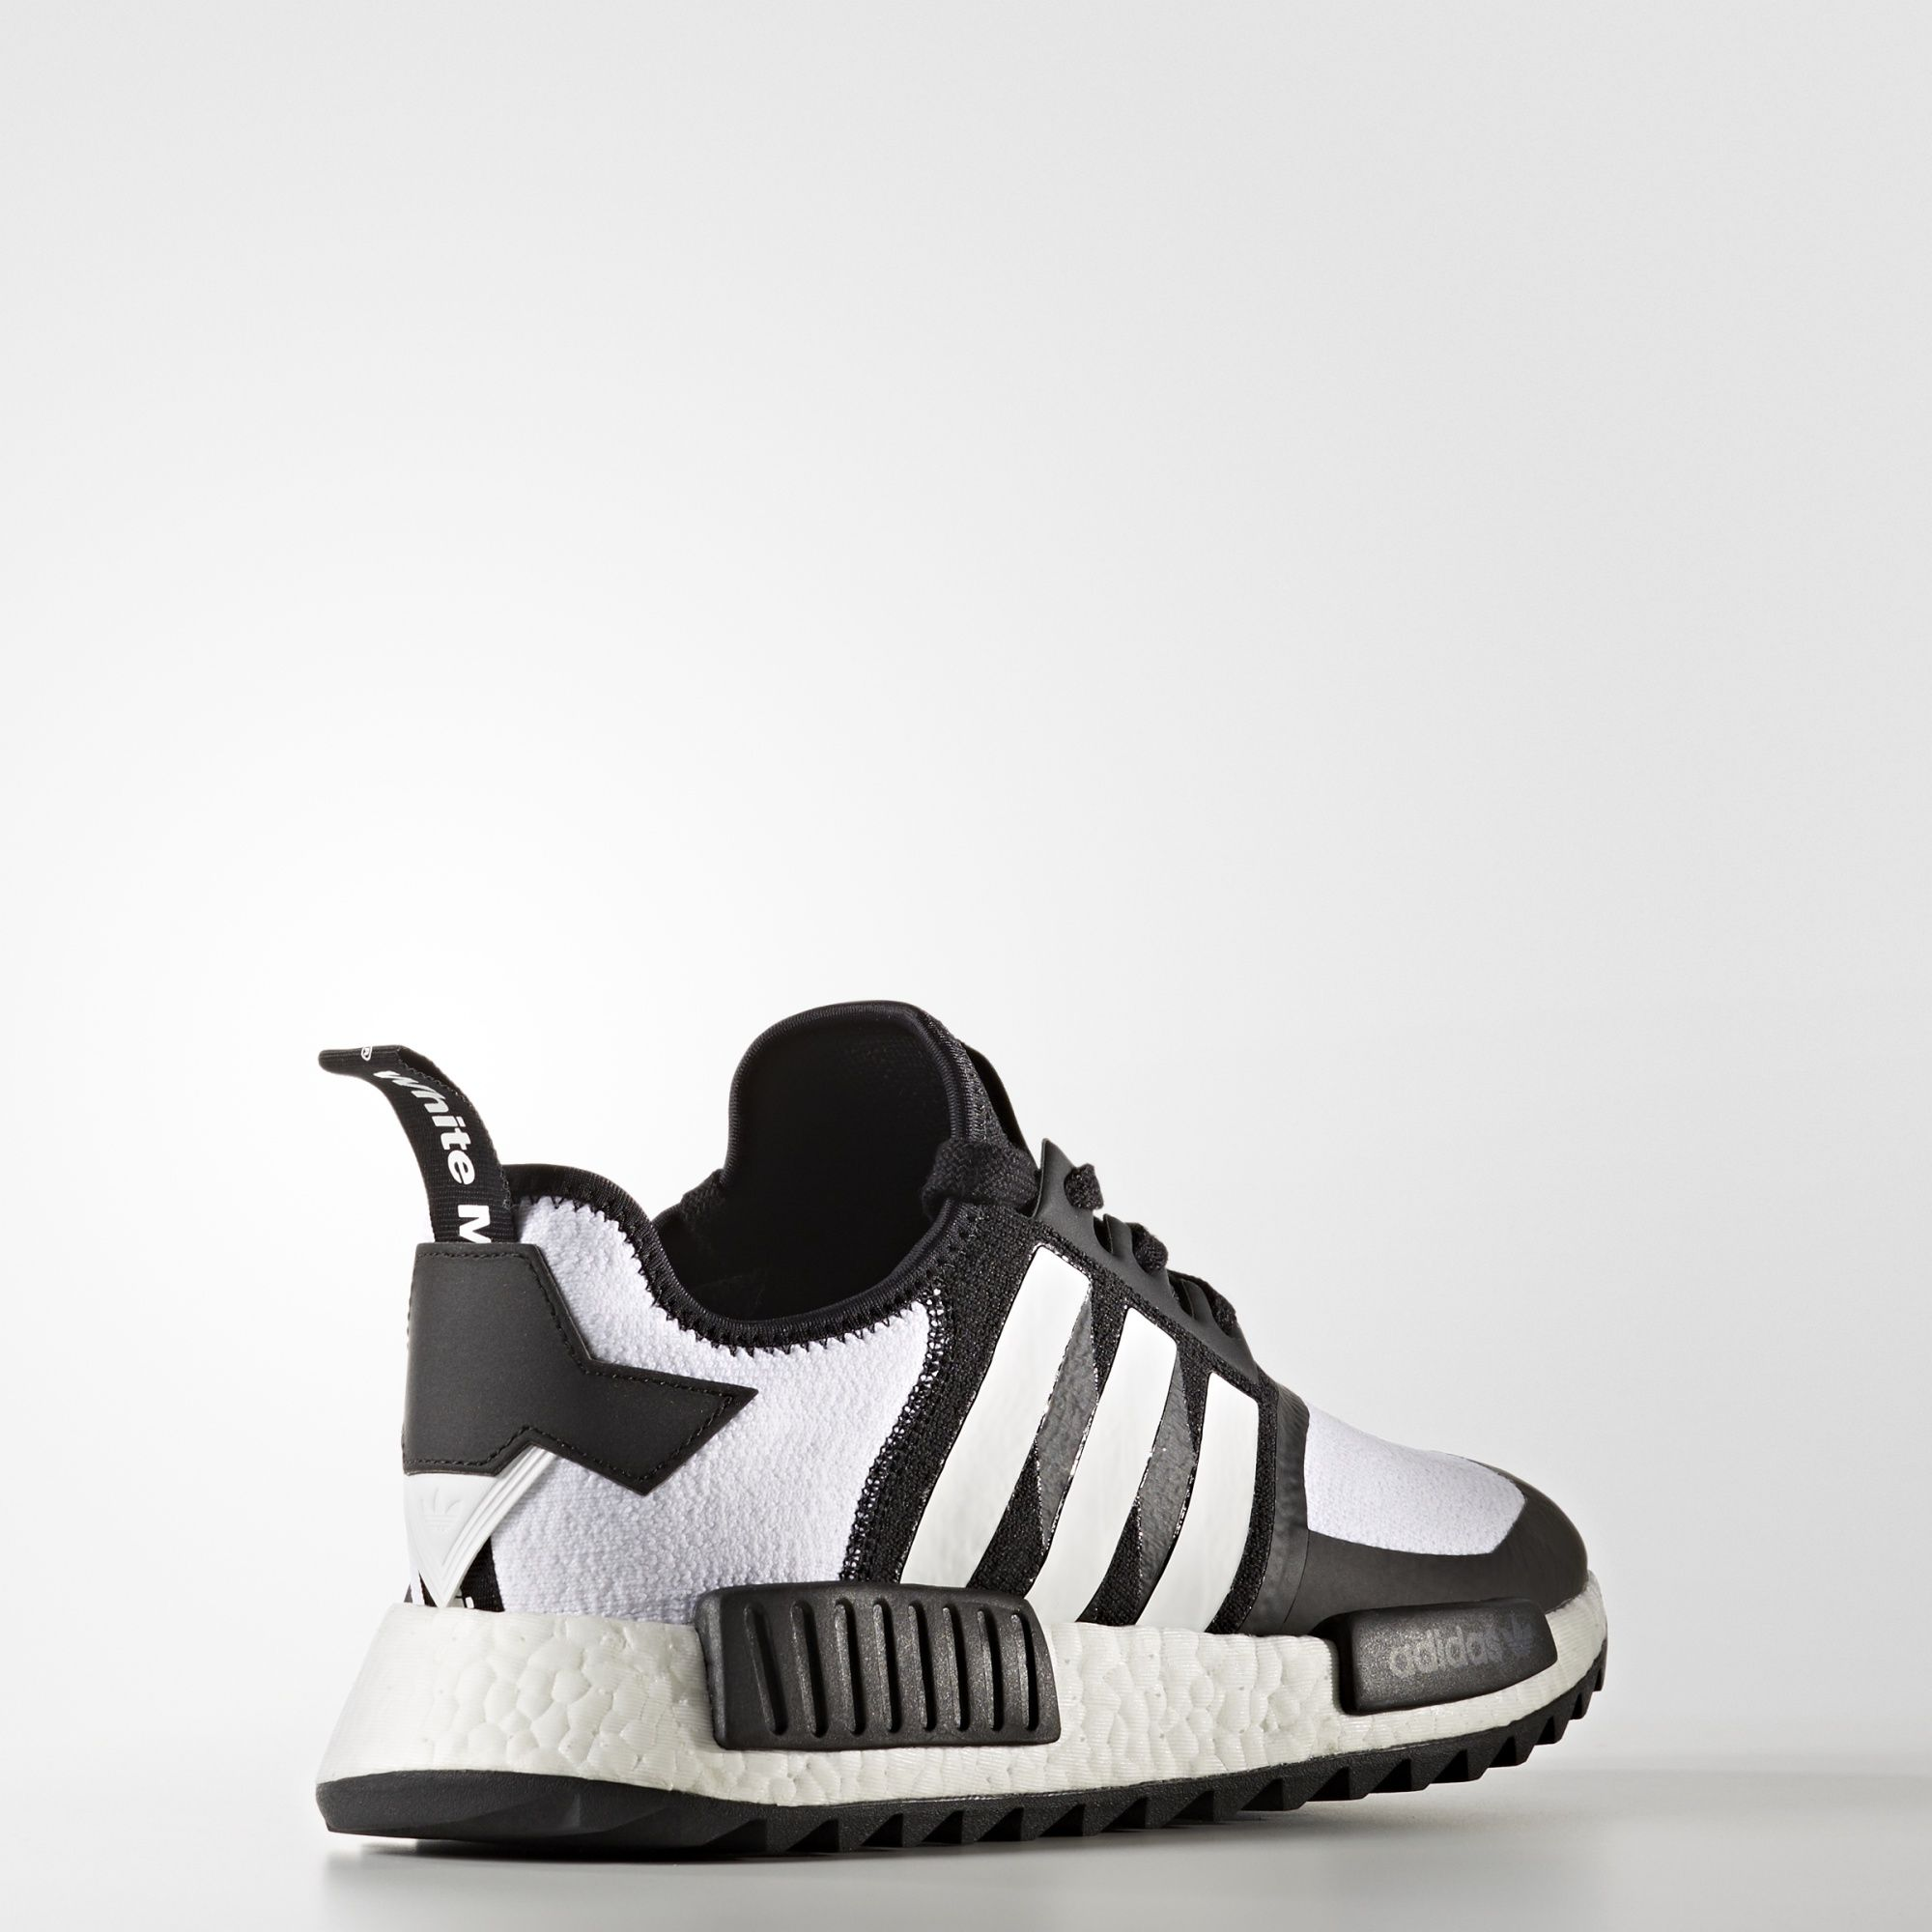 CG3646 White Mountaineering x adidas NMD R1 Trail Primeknit Black 3